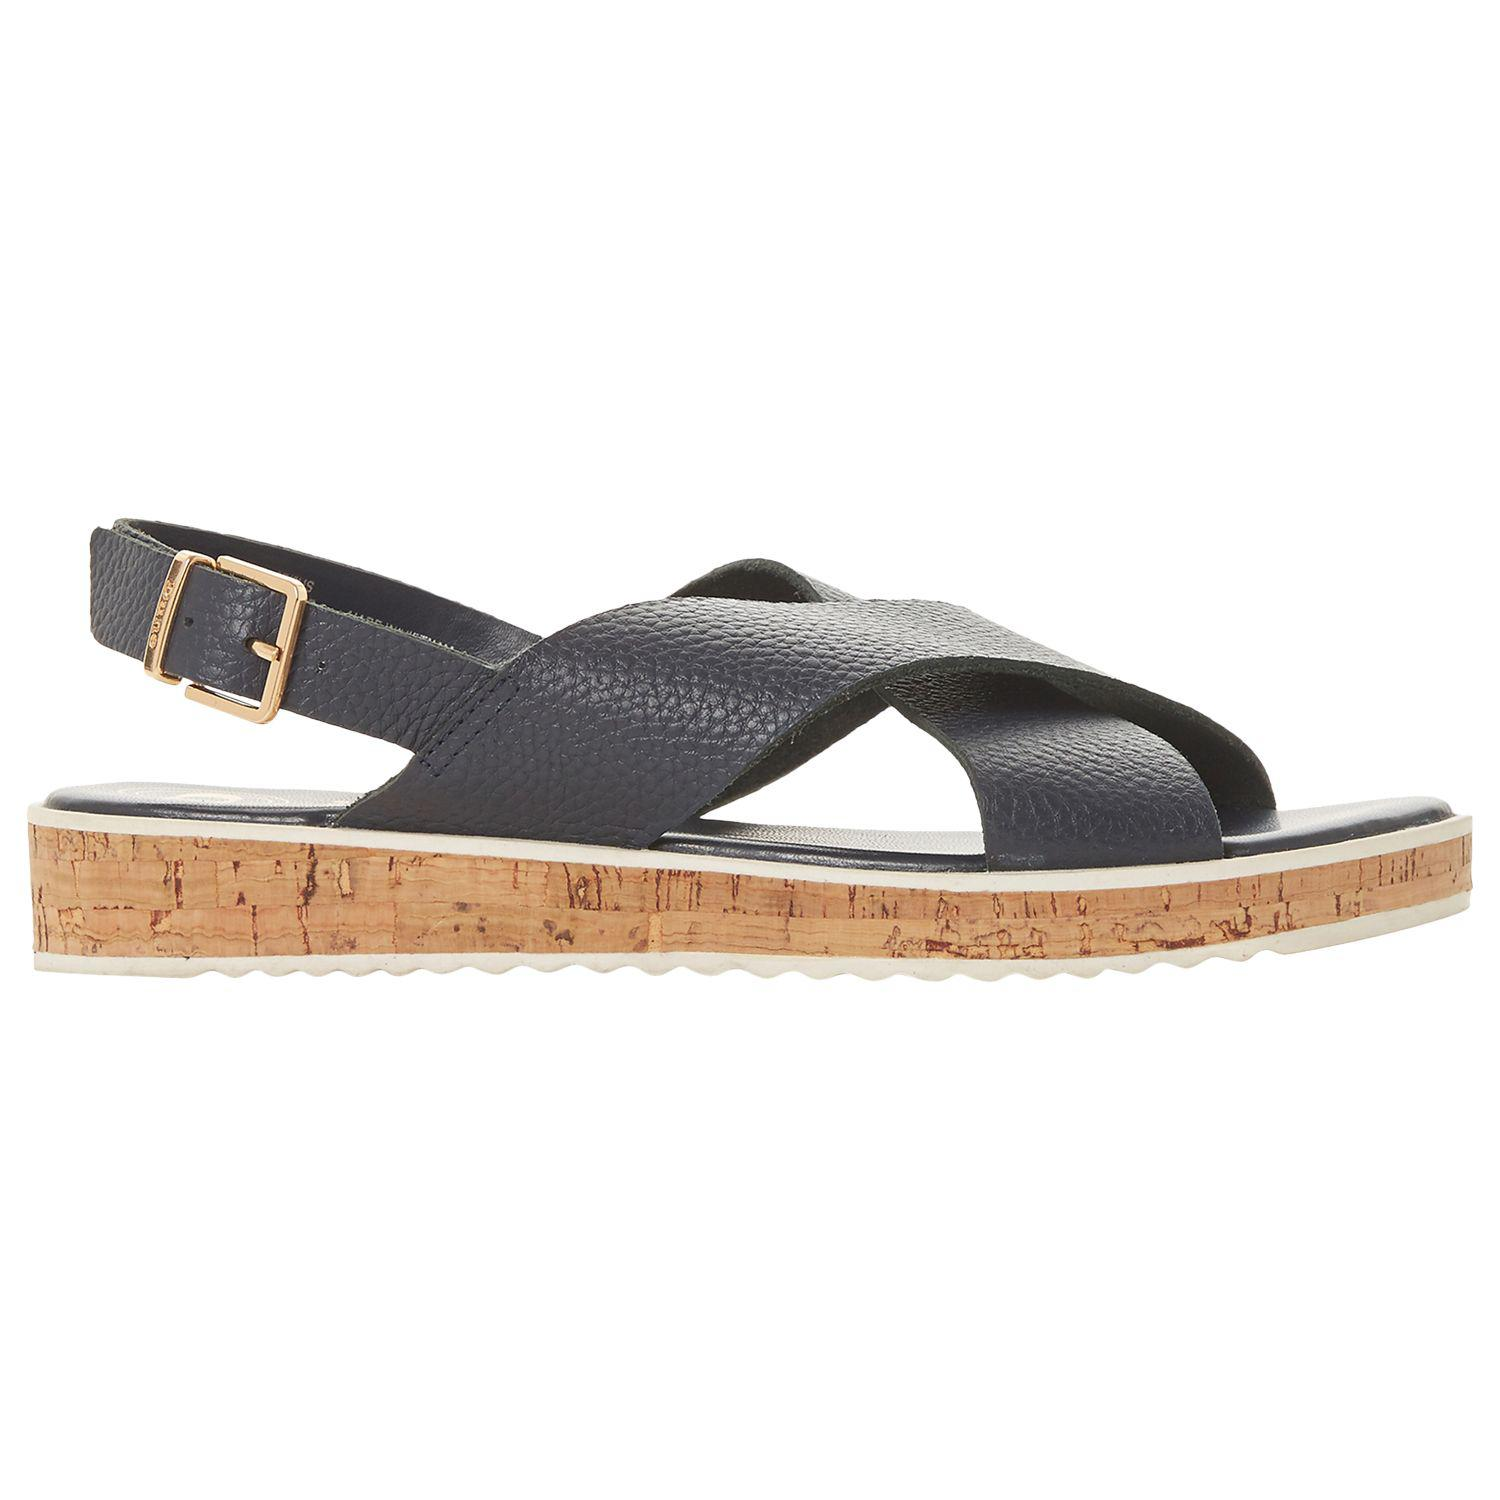 2512d711c56e Dune. Women s Blue Lorde Cross Strap Sandals. £48 From John Lewis and  Partners